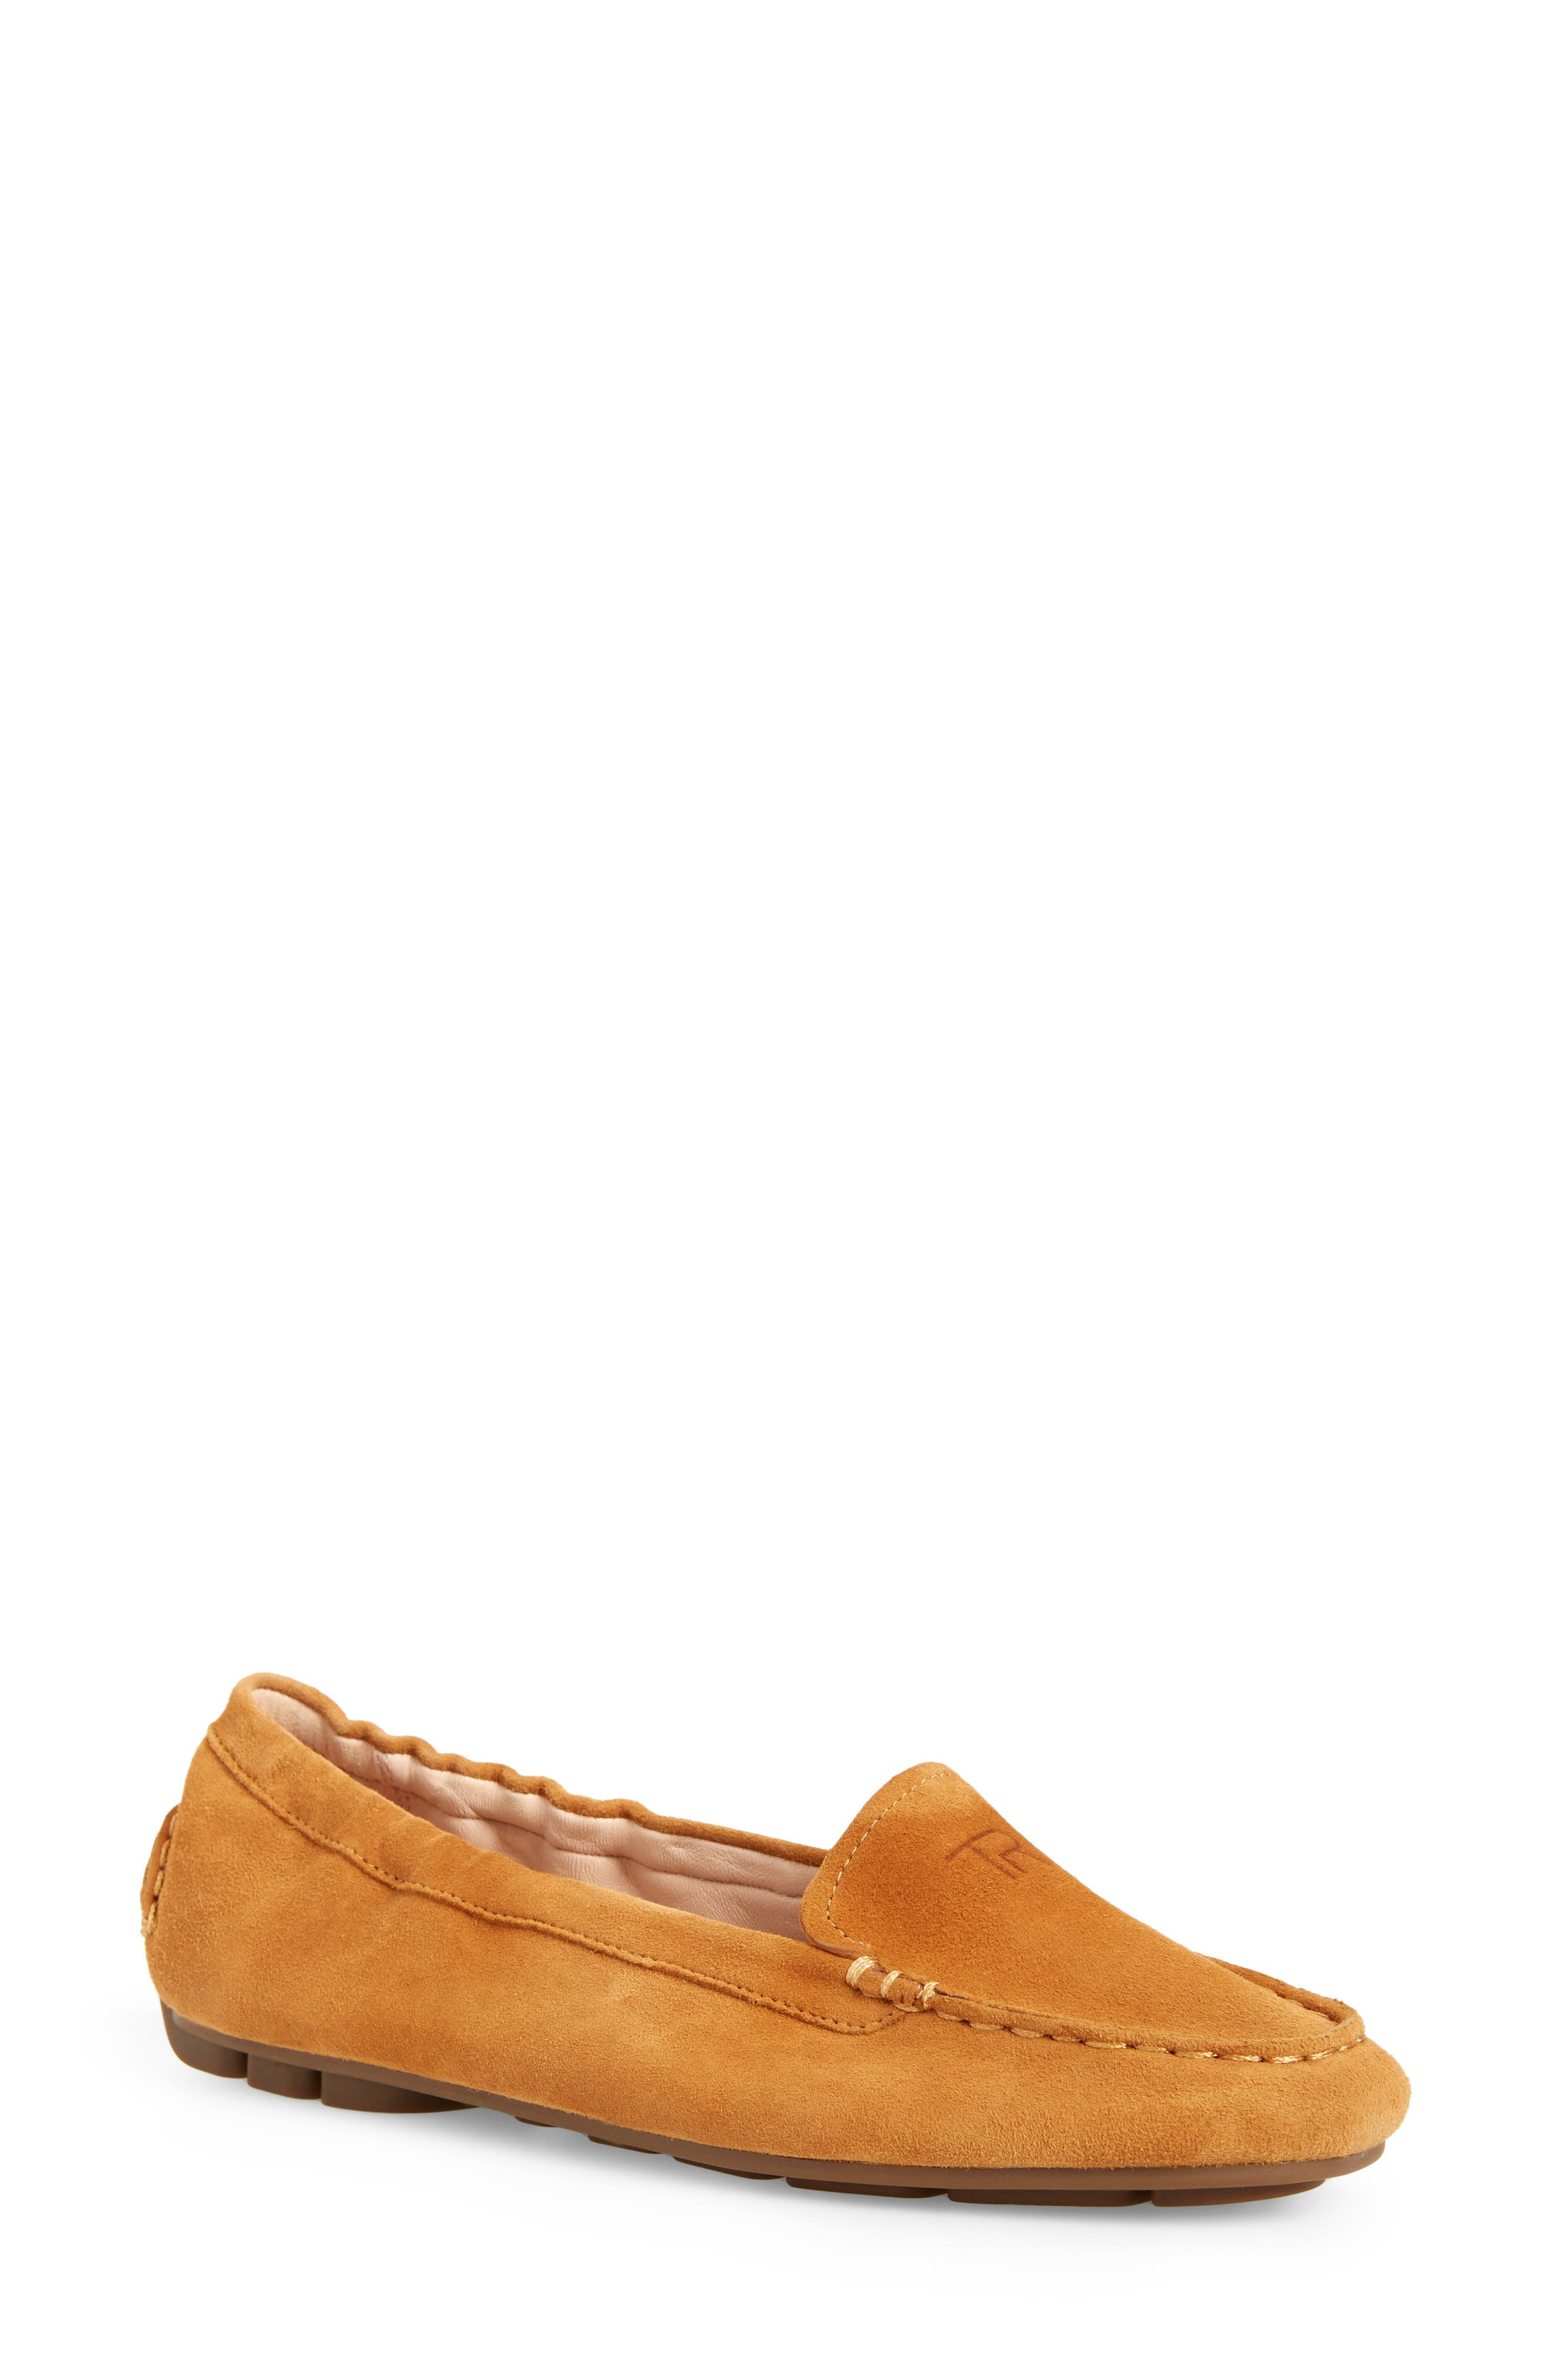 Kristine Loafer,                             Main thumbnail 1, color,                             Cuoio Suede